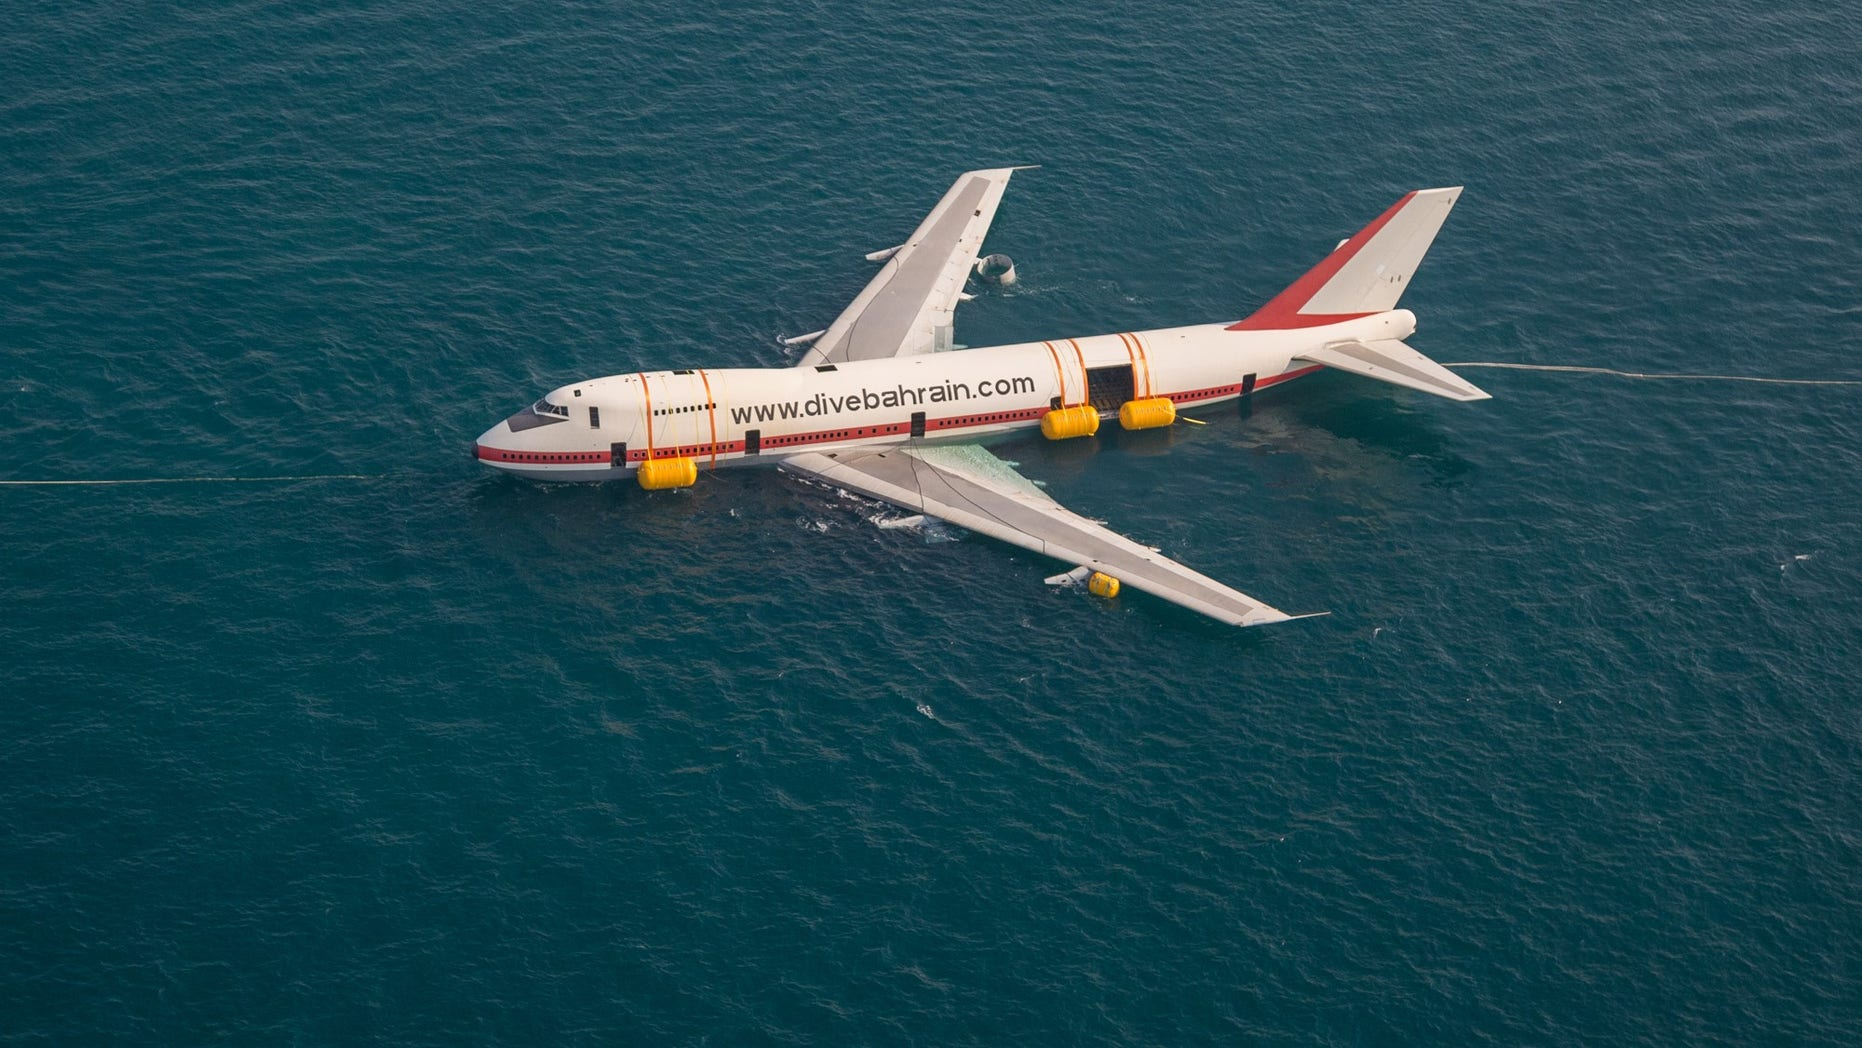 The Boeing 747 was towed out to sea to be sunk as part of what's being called an eco-friendly project.